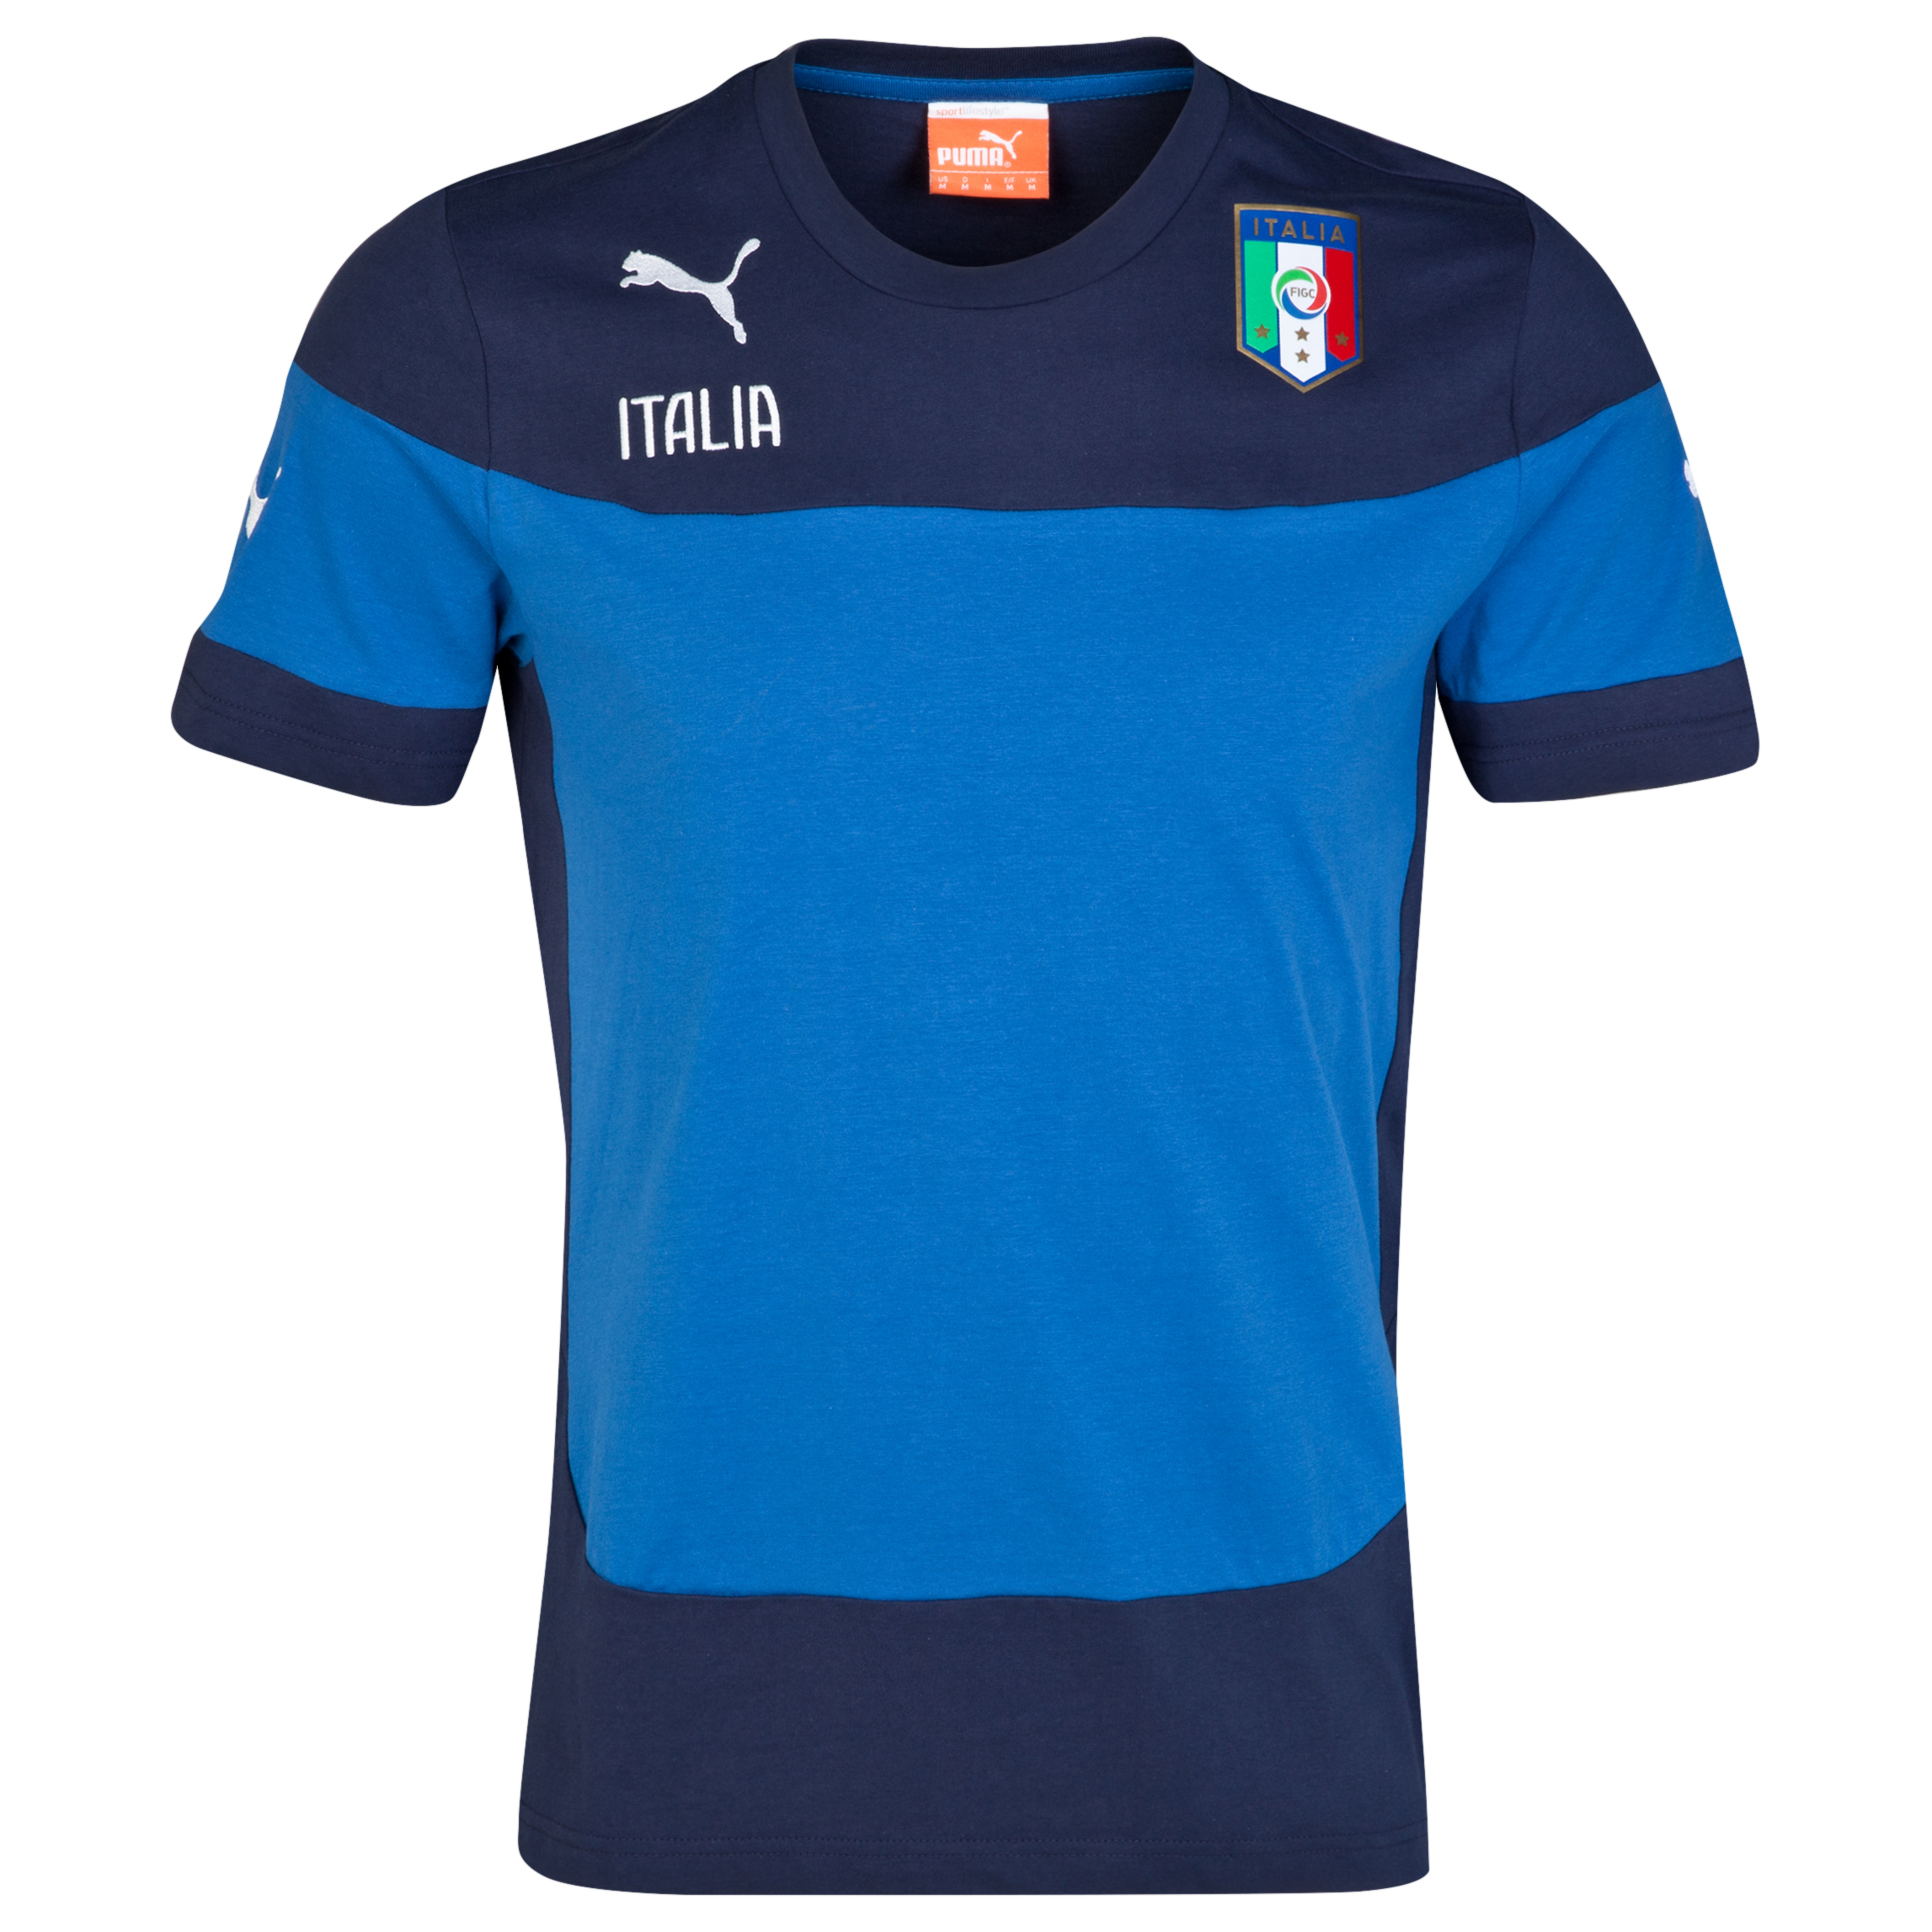 Italy Leisure T-Shirt - Blue Blue